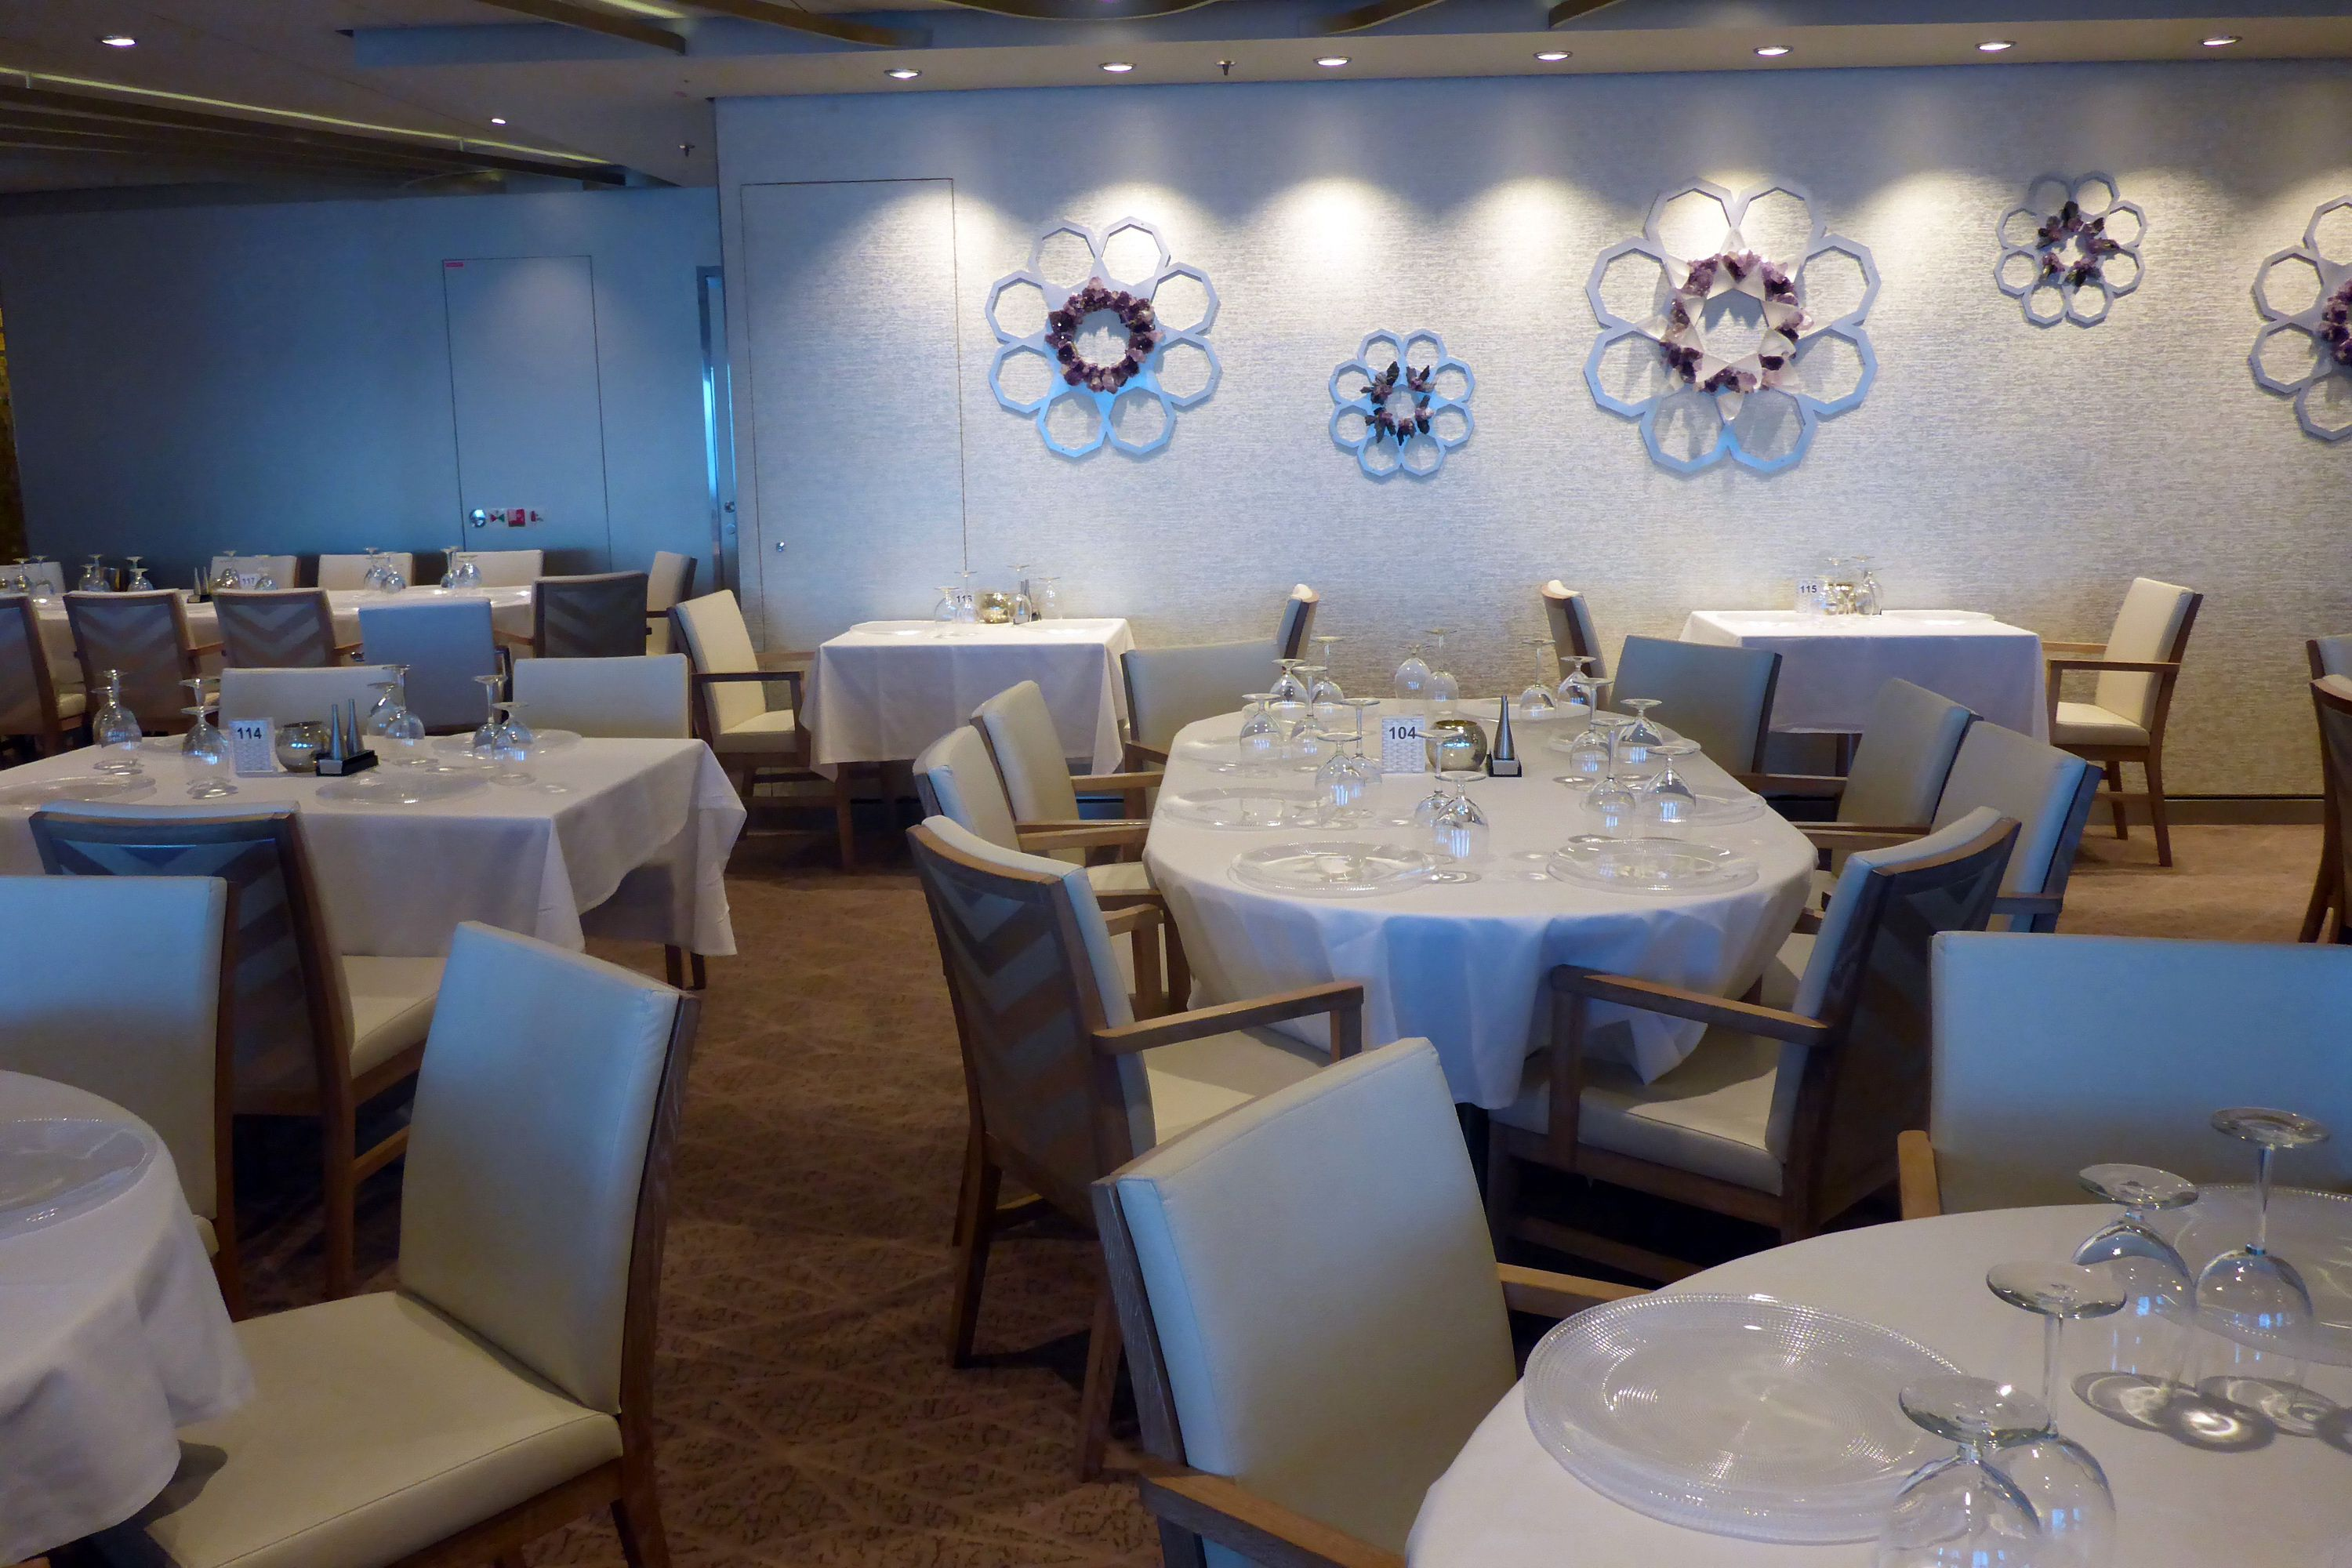 Dining on the Anthem of the Seas Cruise Ship